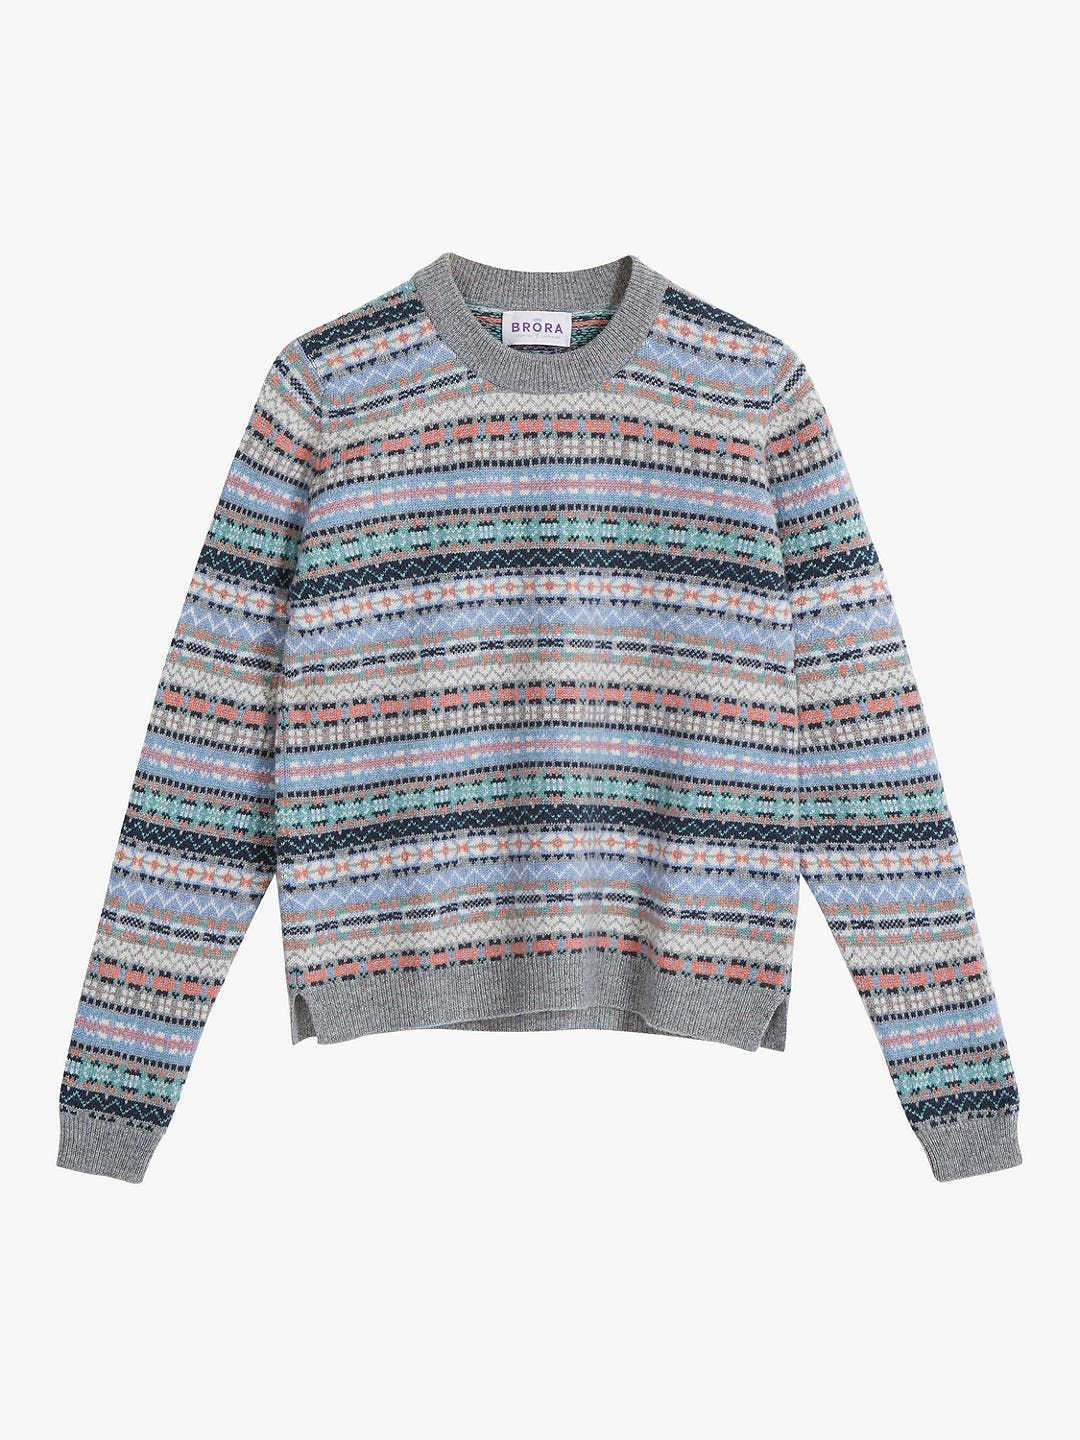 Christmas Jumper Day the best styles to don this festive